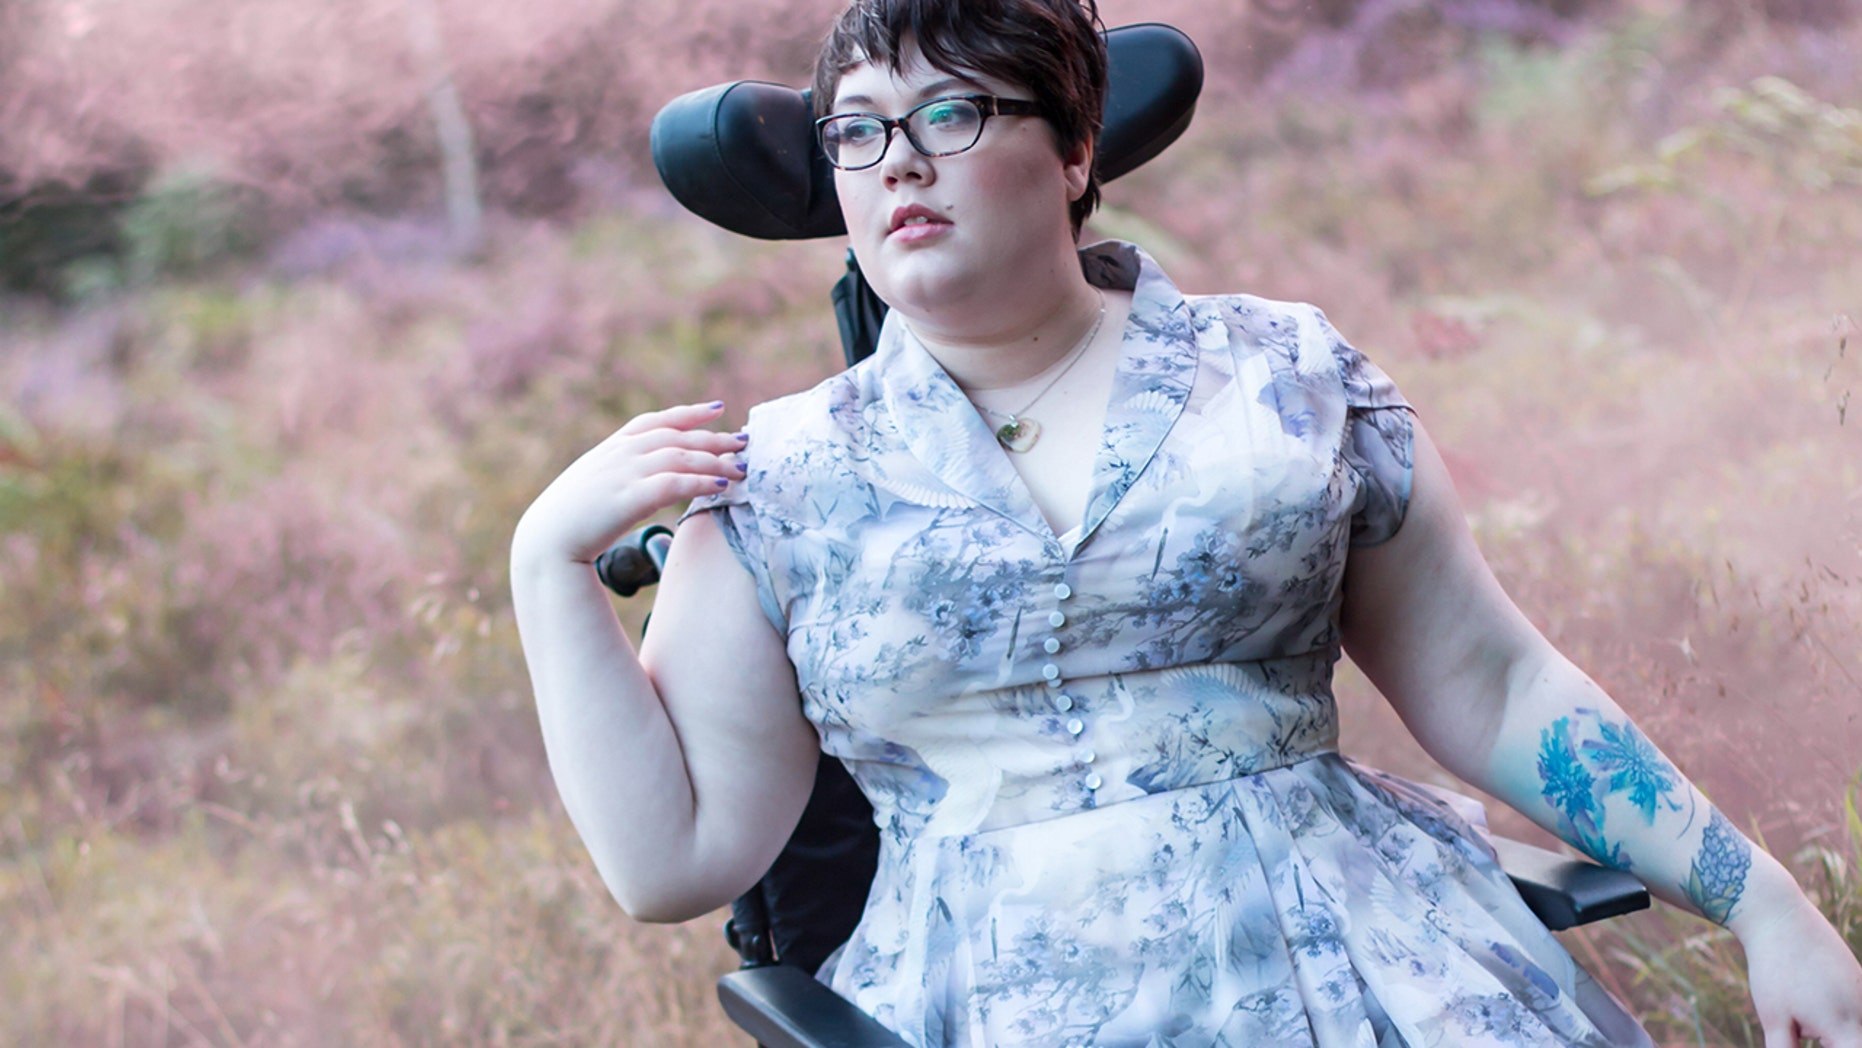 Sally Leadbetter posed for this photo wearing a ModCloth dress, which the brand shared on their Instagram